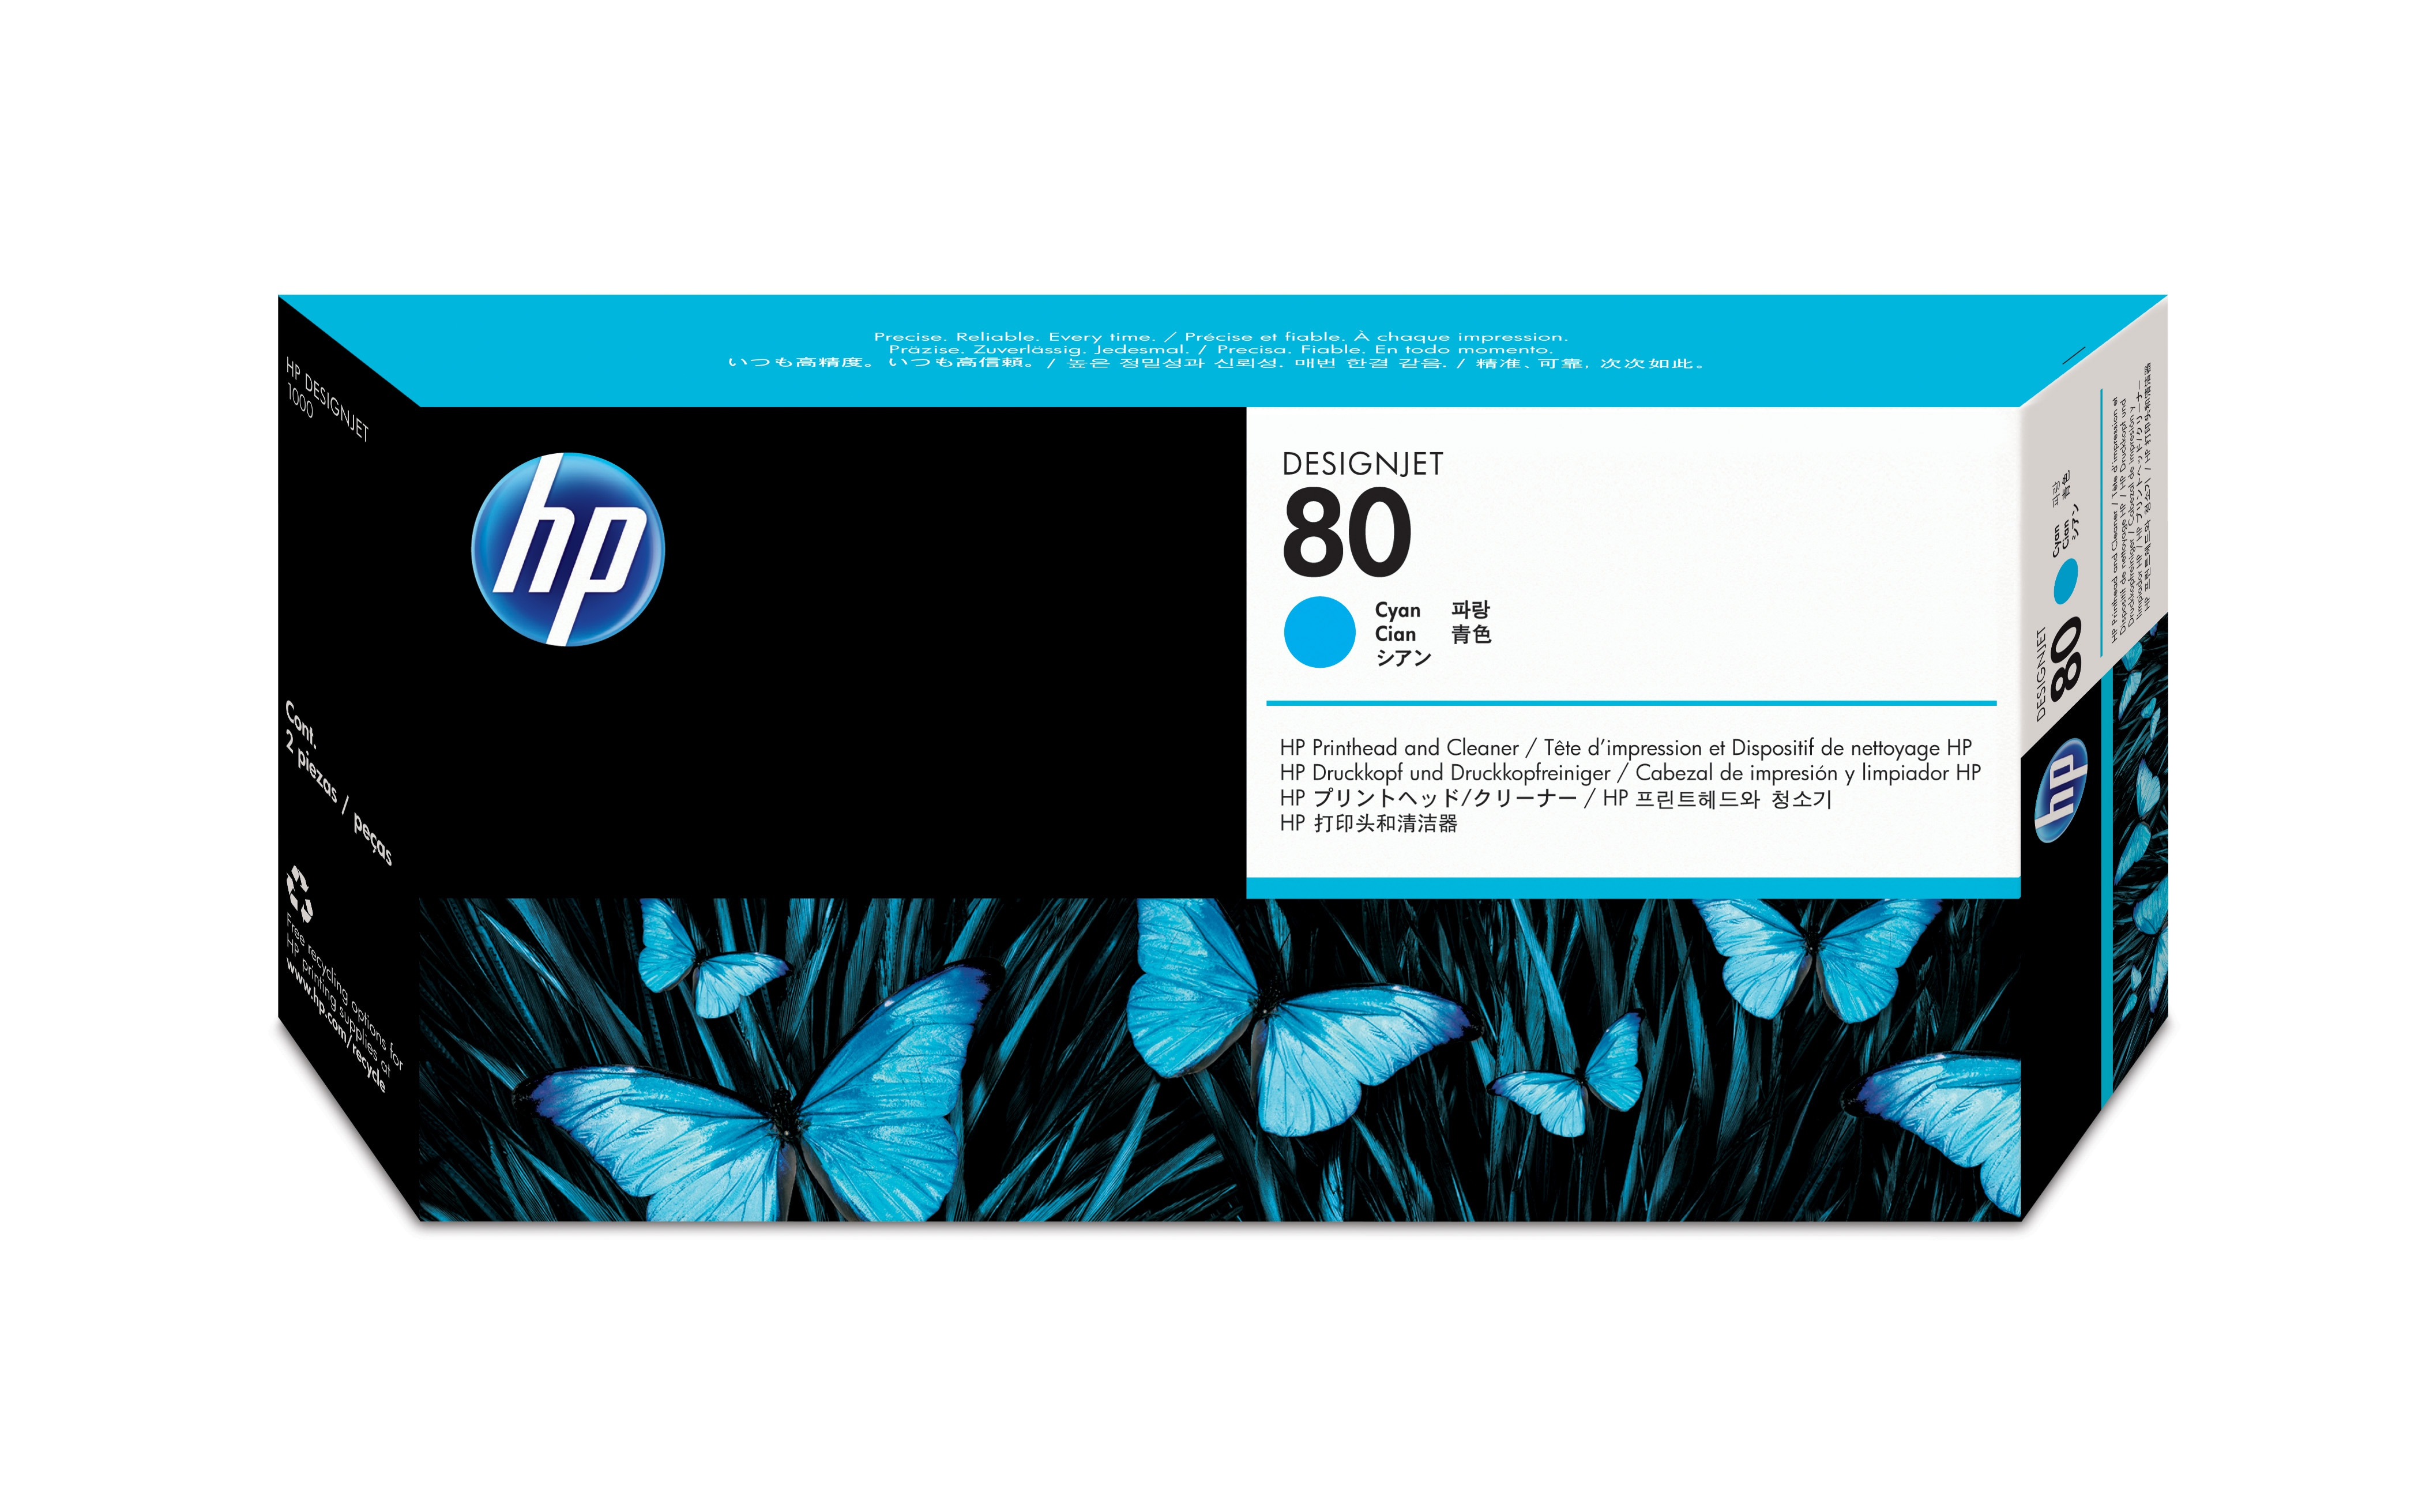 HP No. 80 Ink Printhead And Cleaner - Cyan C4821a